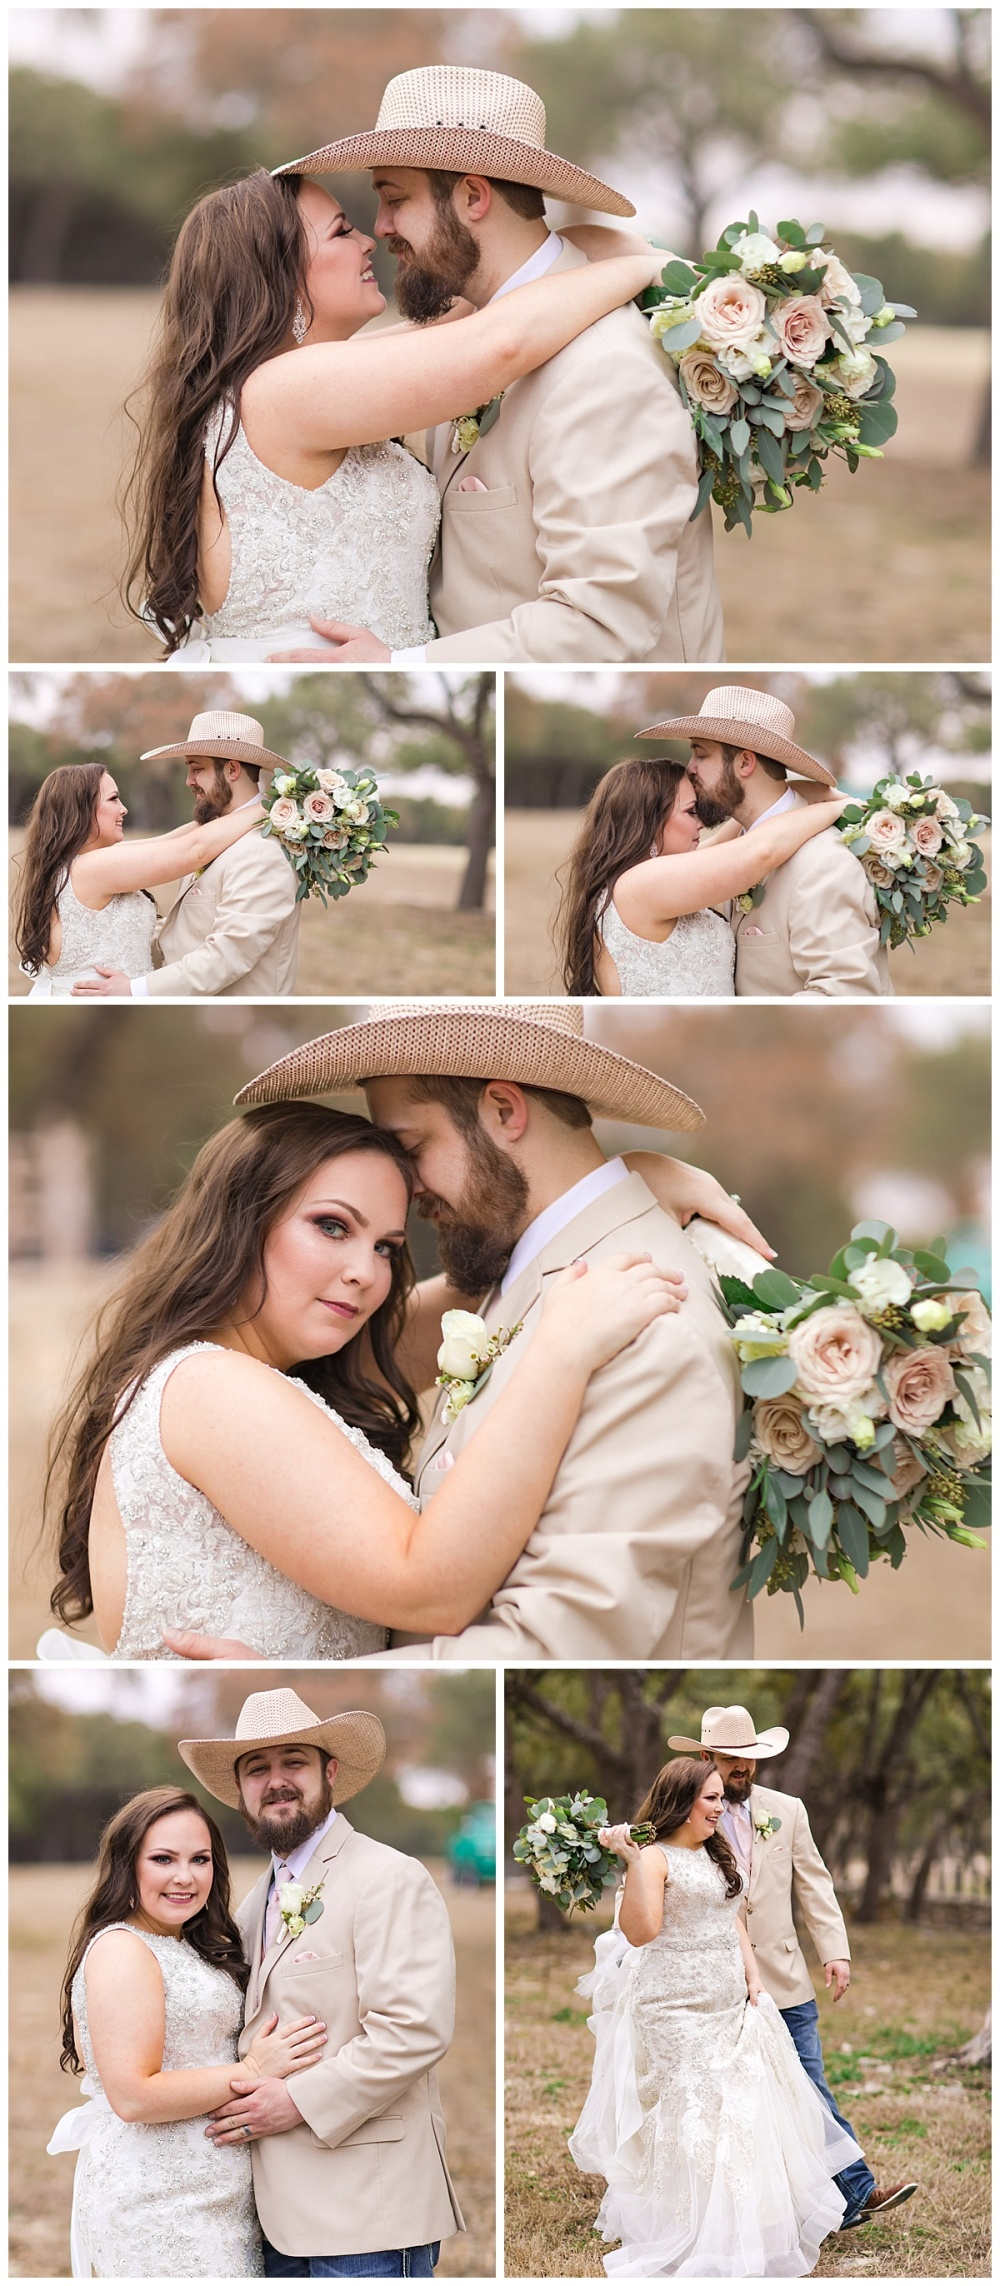 Carly-Barton-Photography-Branded-T-Ranch-Kendalia-Texas-Hill-Country-Wedding_0041.jpg